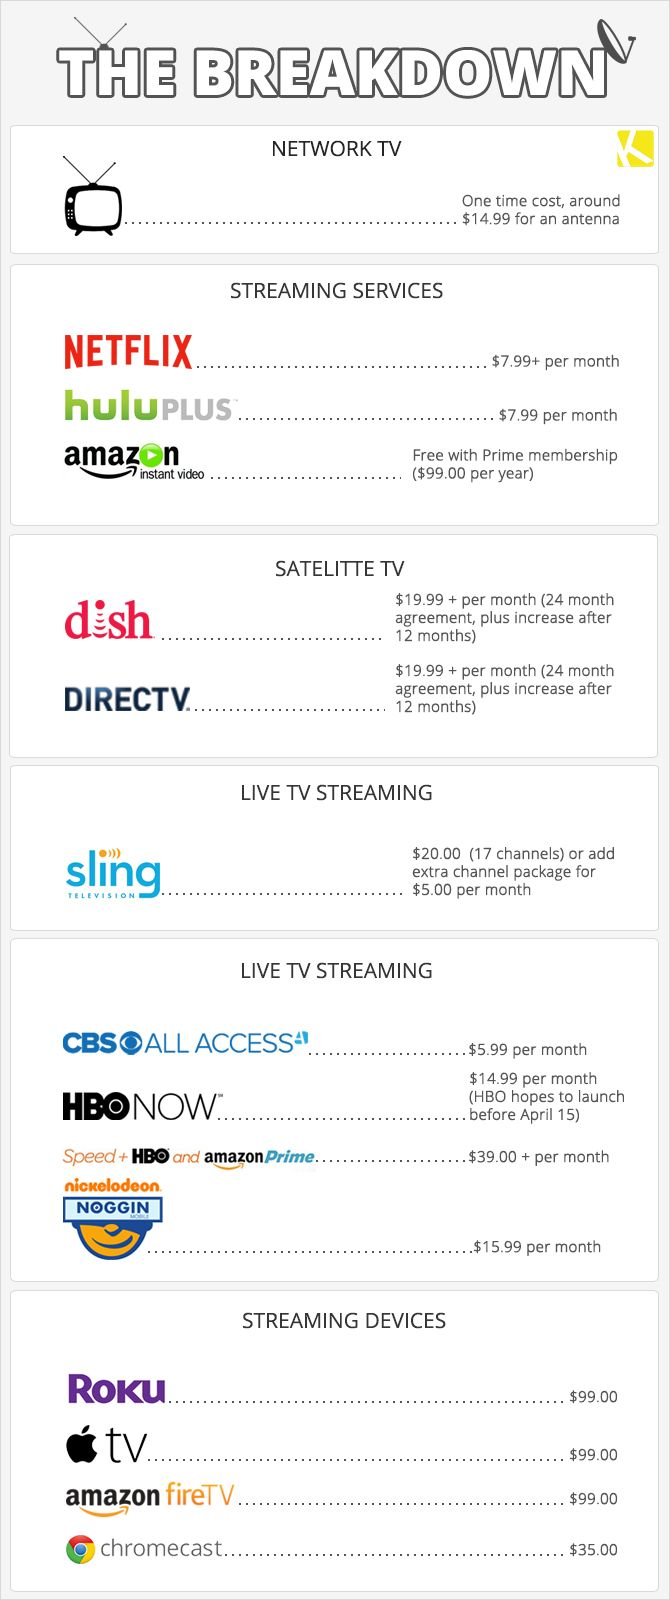 Cable+TV+Versus+A+La+Carte+Services:+Which+Is+the+Right+Choice+for+You?